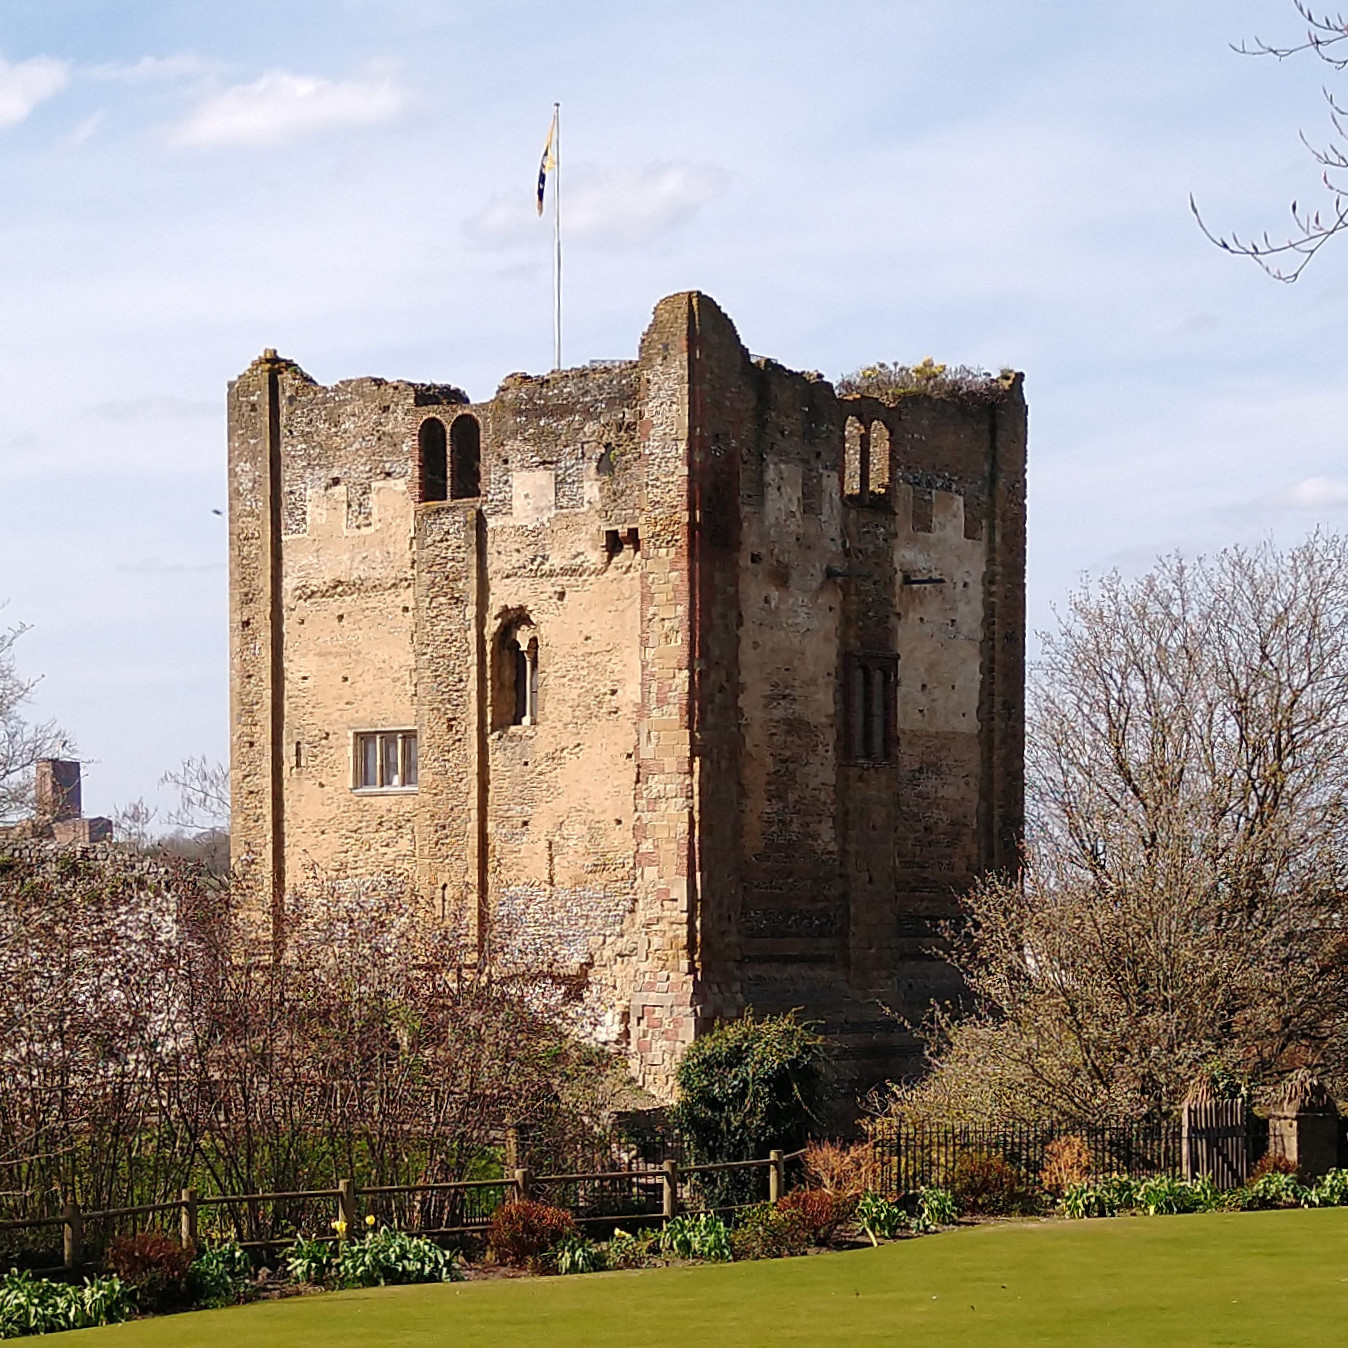 The keep of Guildford Castle, seen from the bowling green